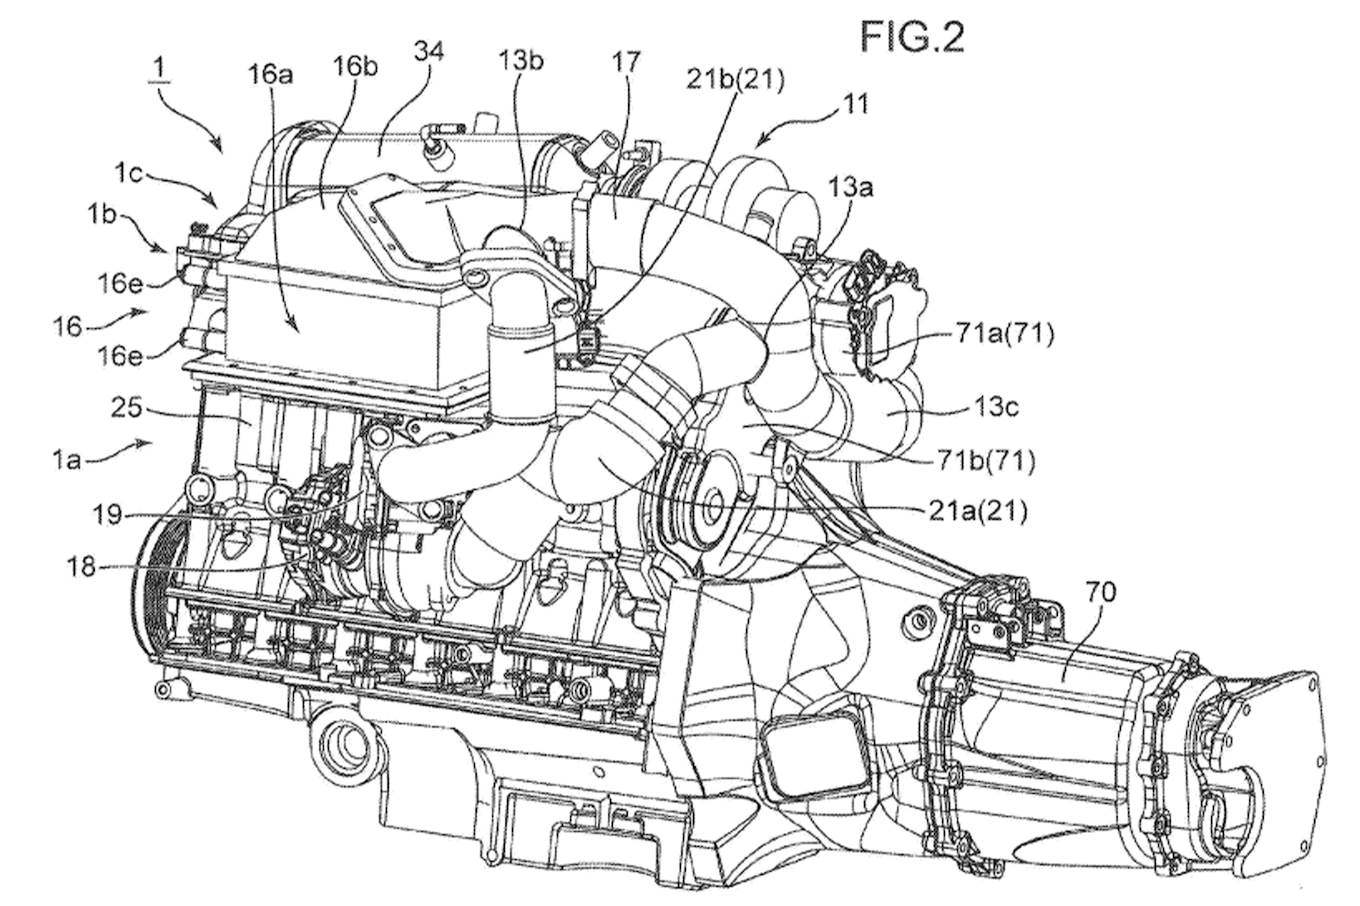 hight resolution of 18 wheeler engines diagram wiring diagram lyc 18 wheeler engine diagram 18 wheeler engines diagram